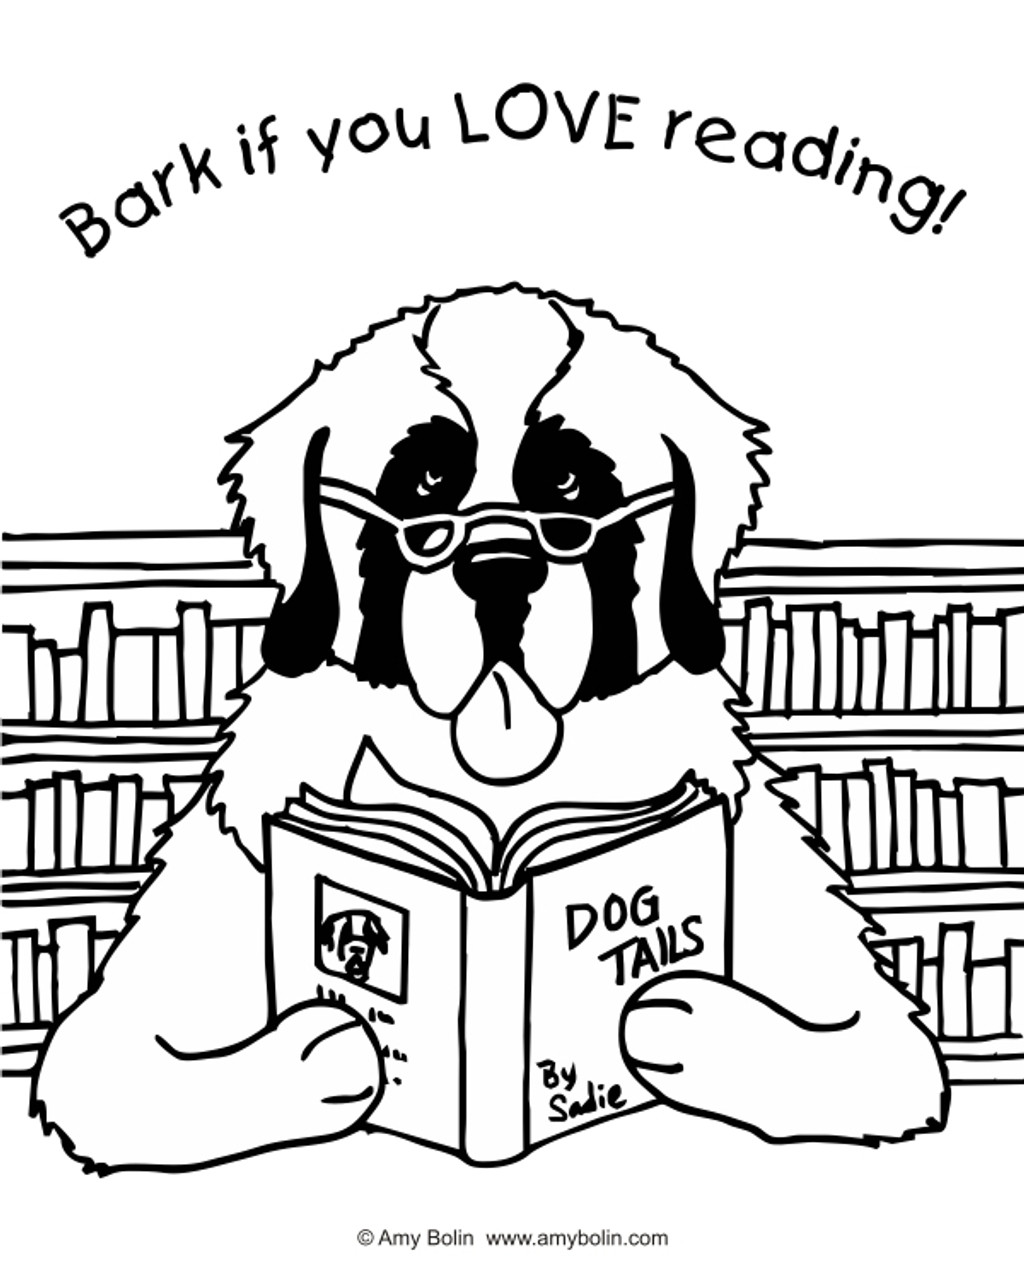 woof #bark #yelp #wham #whiz... - Coloring Pages I Love ... | 1280x1024